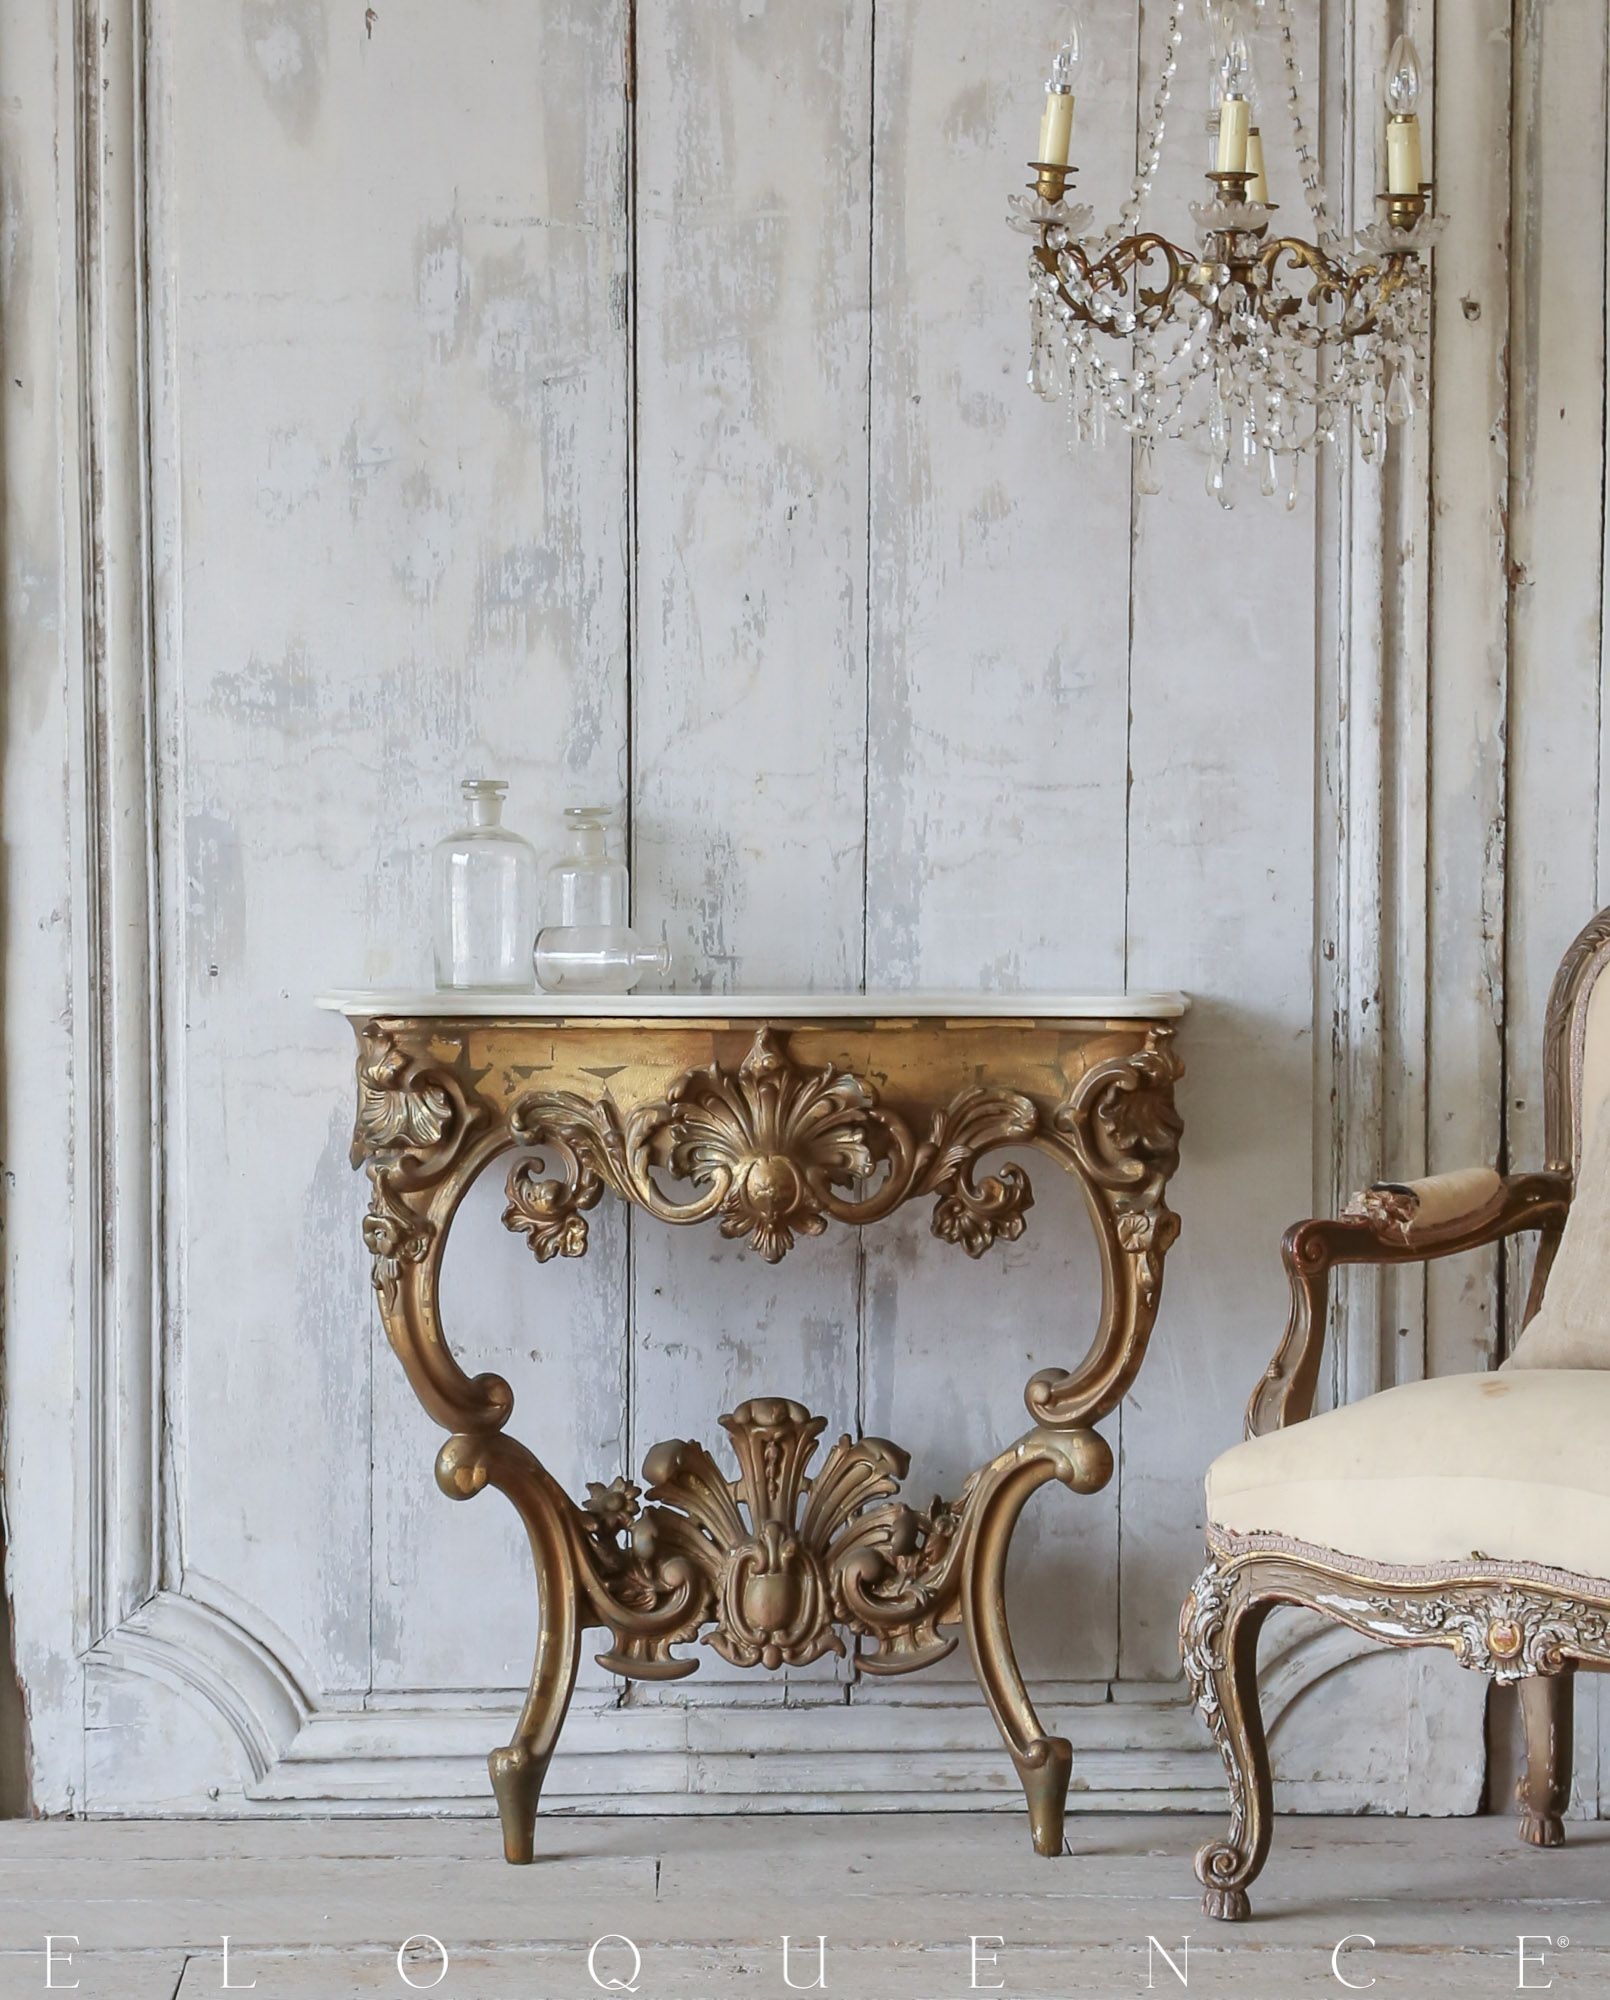 Stunning Antique Console Table Circa 1890 ELOQUENCE ELOQUENCE l